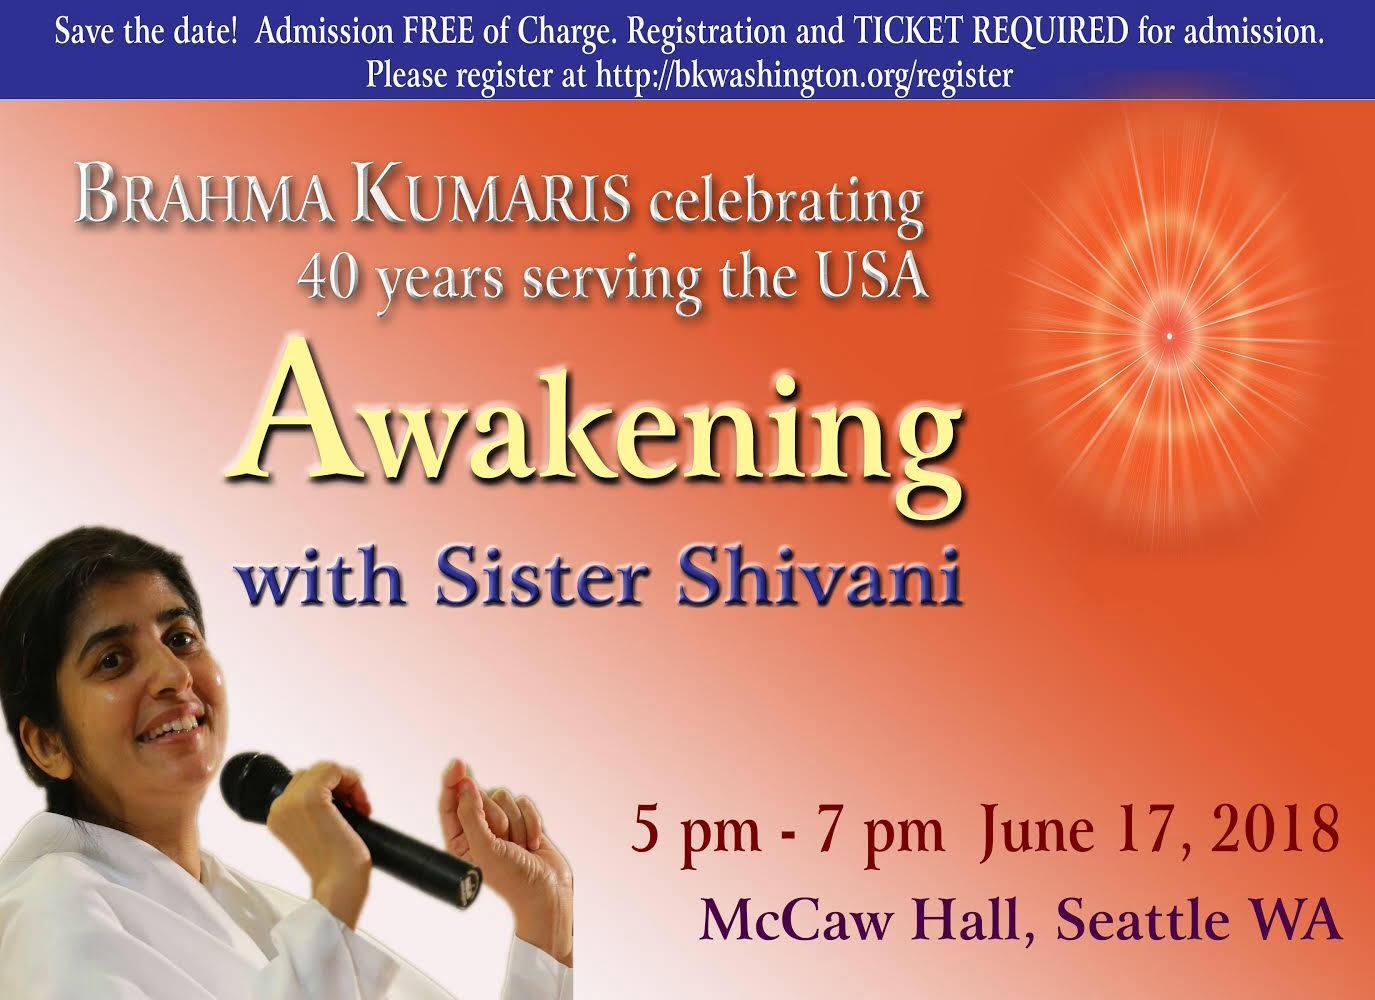 Awakening in Seattle with Sister Shivani